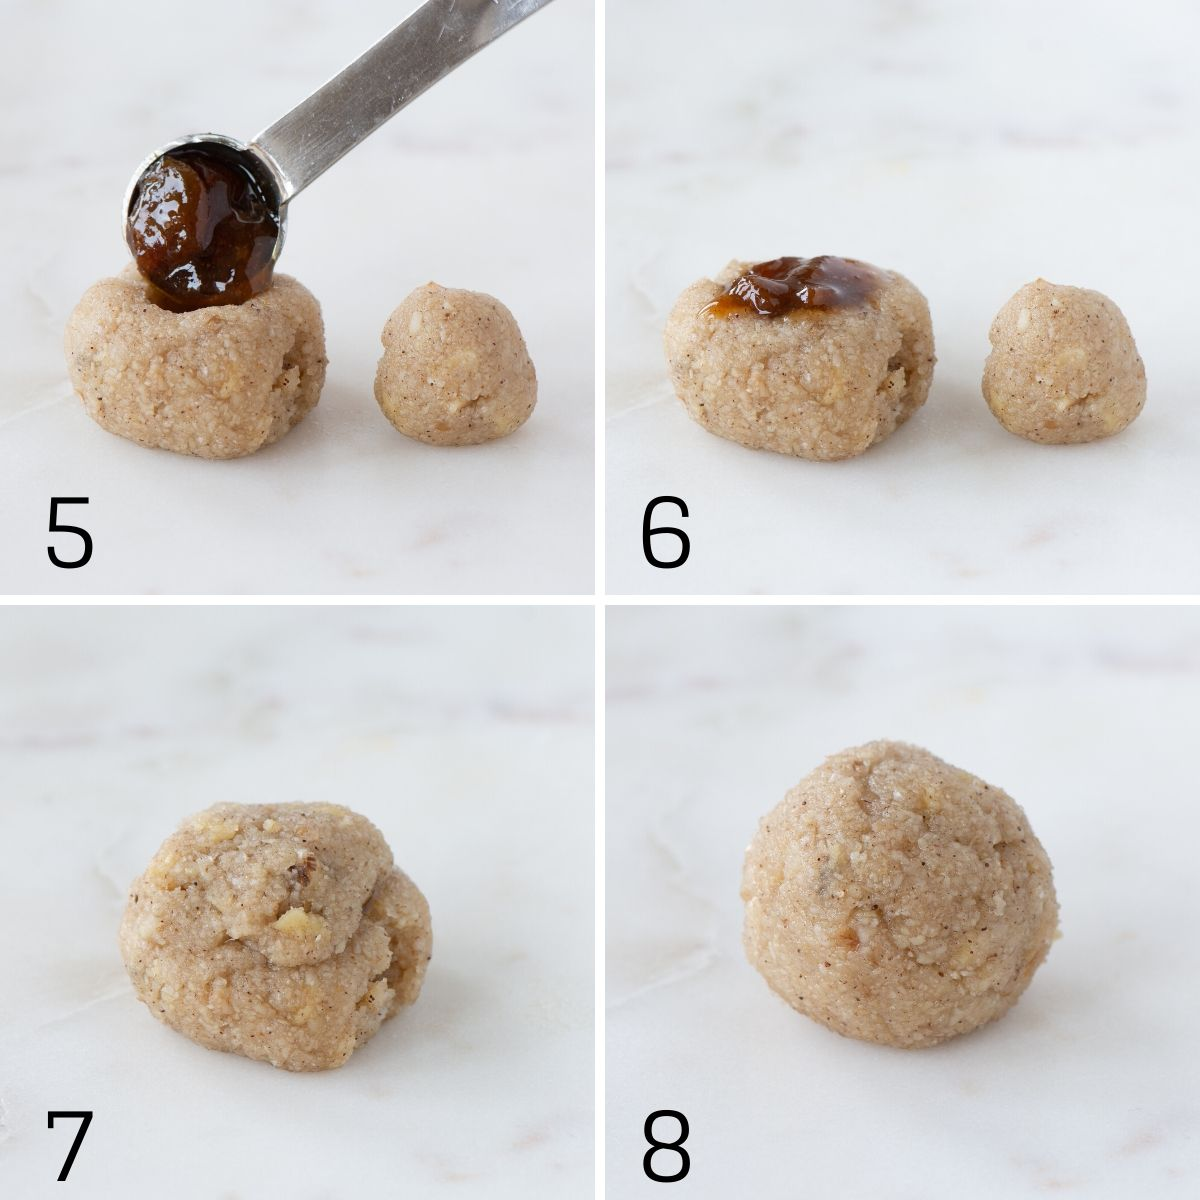 Steps 5-8 for adding a hidden mincemeat centre to your Christmas amaretti biscuits.  5) Adding mincemeat to the centre of the biscuits using a small spoon. 6) The biscuit after the mincemeat has been added. 7) After additional biscuit dough has been used to cover the mincemeat. 8) The biscuit dough has been rolled back into a round ball.